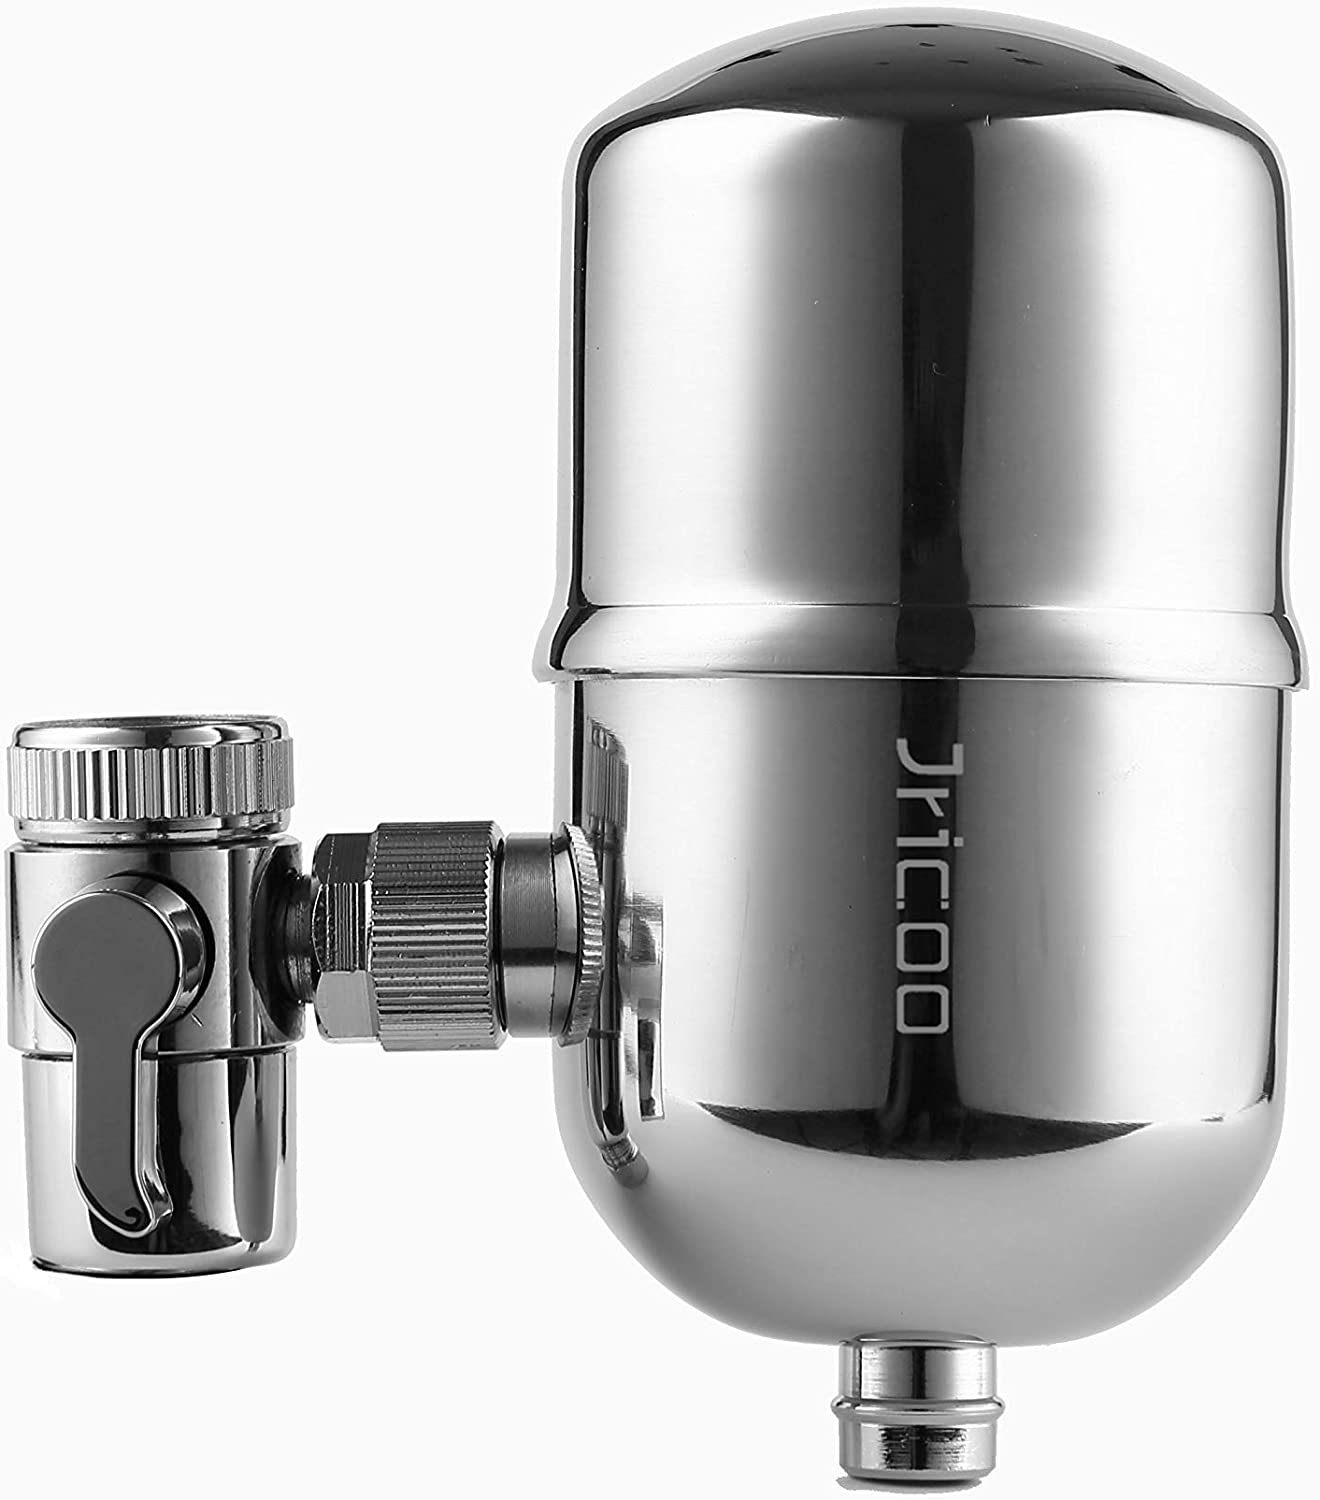 Jricoo Water Filter Faucet Stainless Steel Faucet Mount Water Filtration System 320-Gallon Long with Carbon Fiber,Home Kitchen Healthy Drinking Water Filter